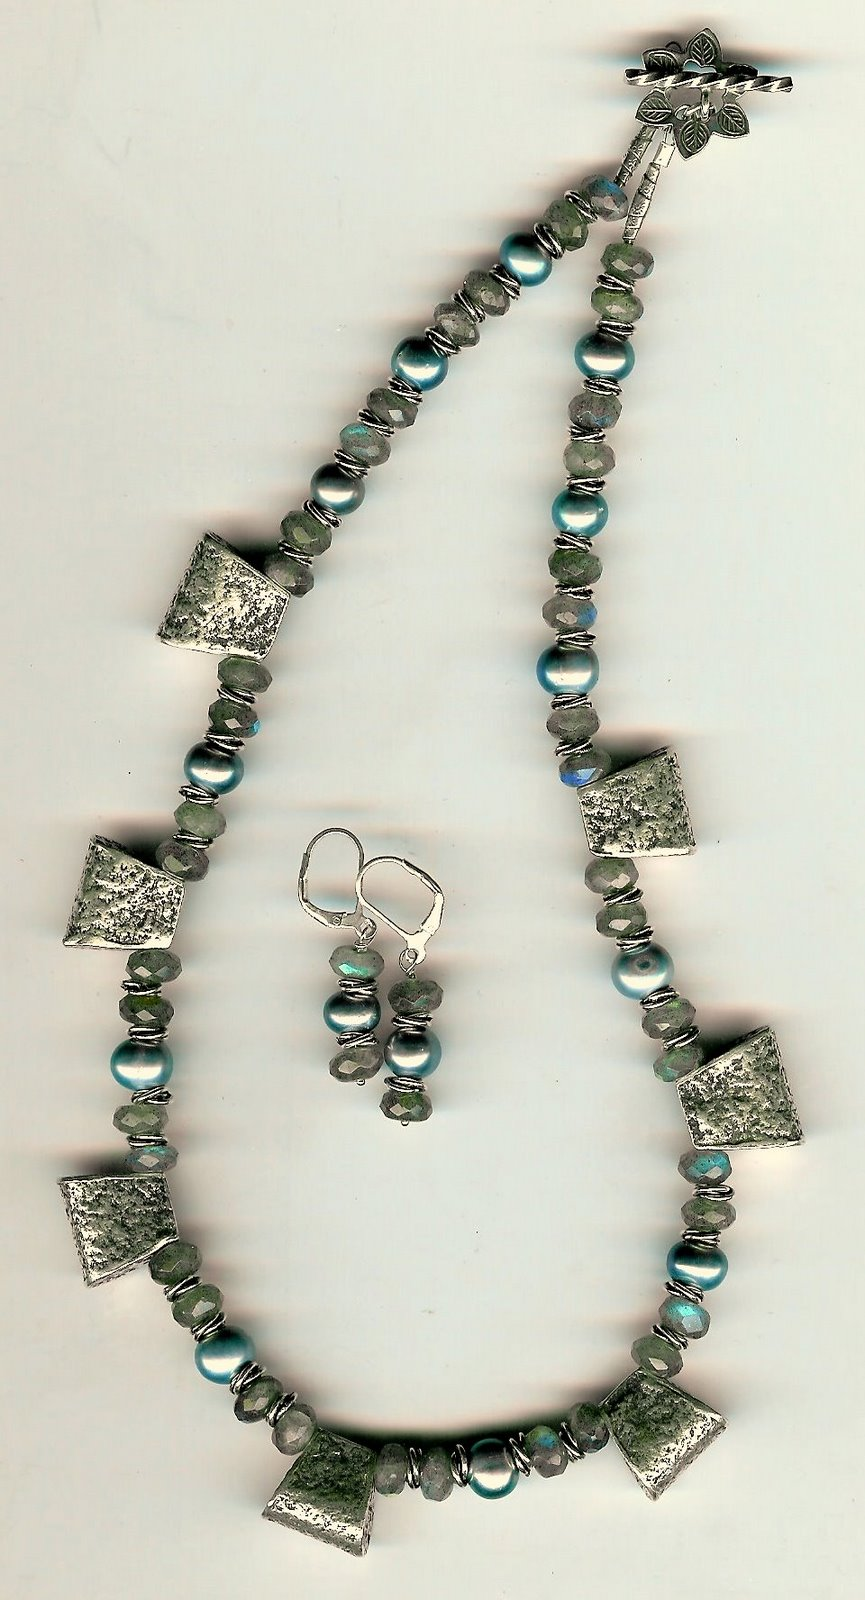 118. Faceted Labradorite, Freshwater pearls with Bali Sterling Silver